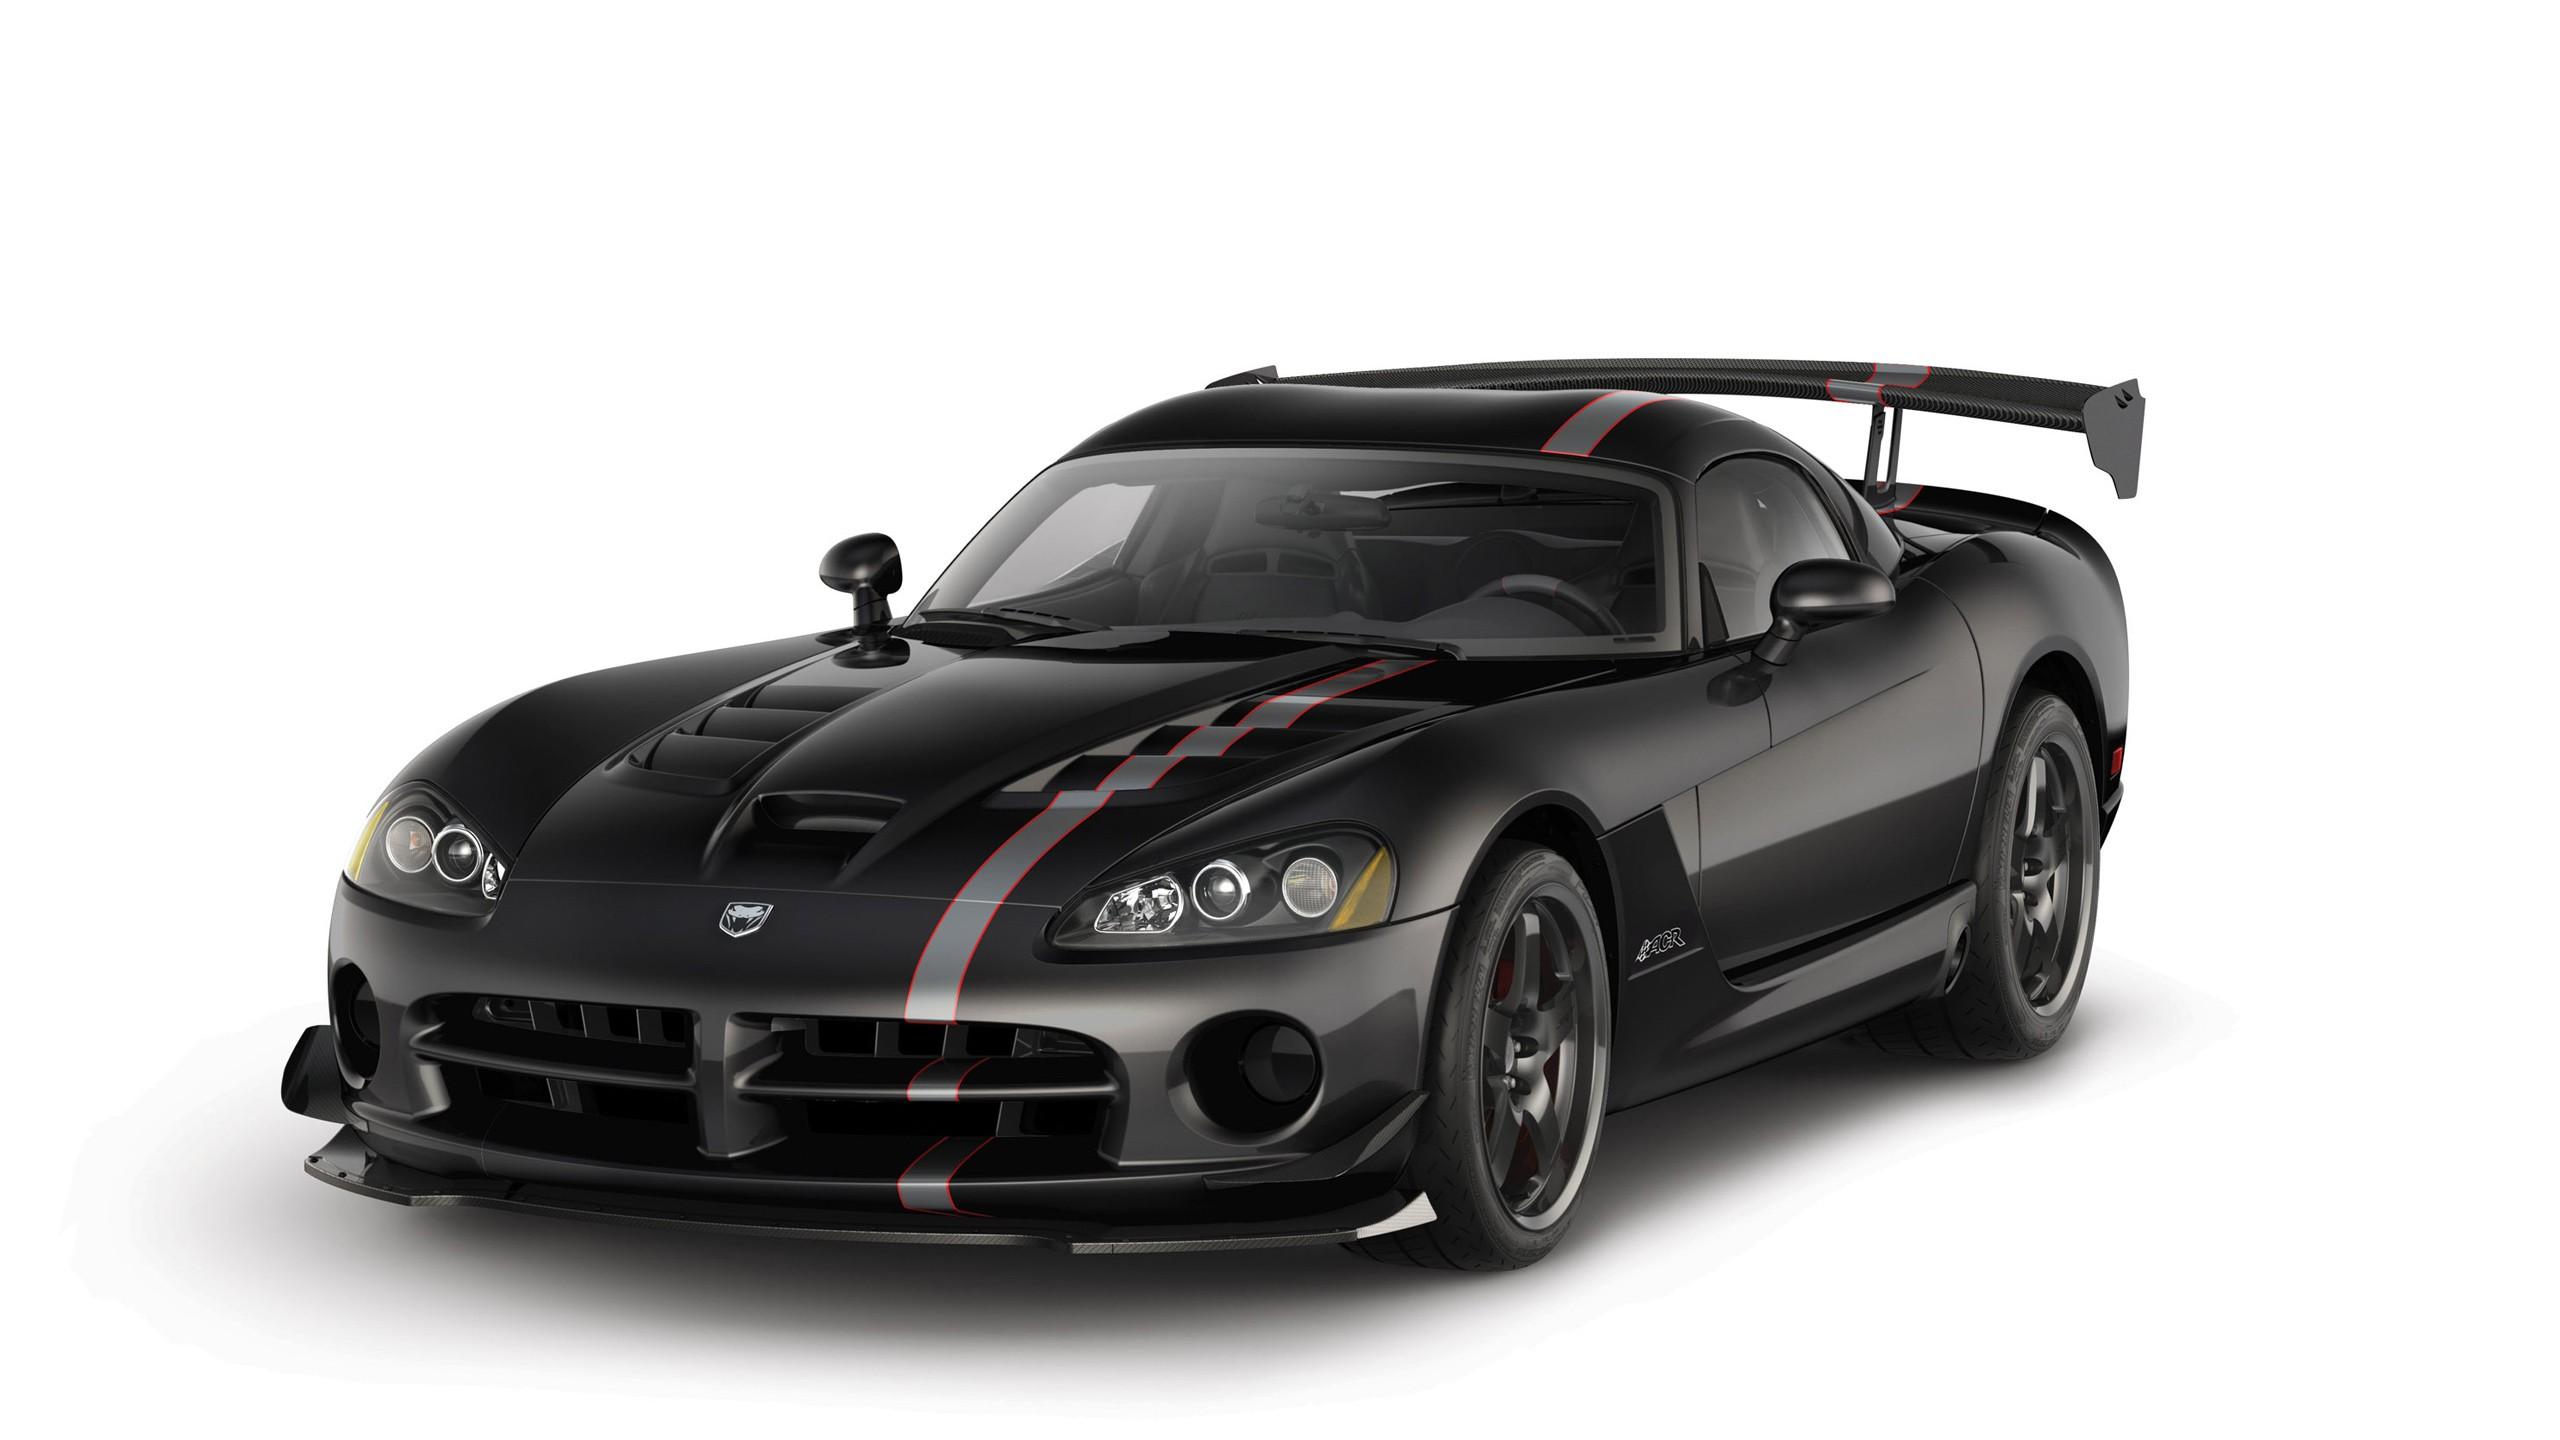 Lowrider Car Hd Wallpaper 2017 Dodge Viper Final Edition 2 Wallpaper Hd Car